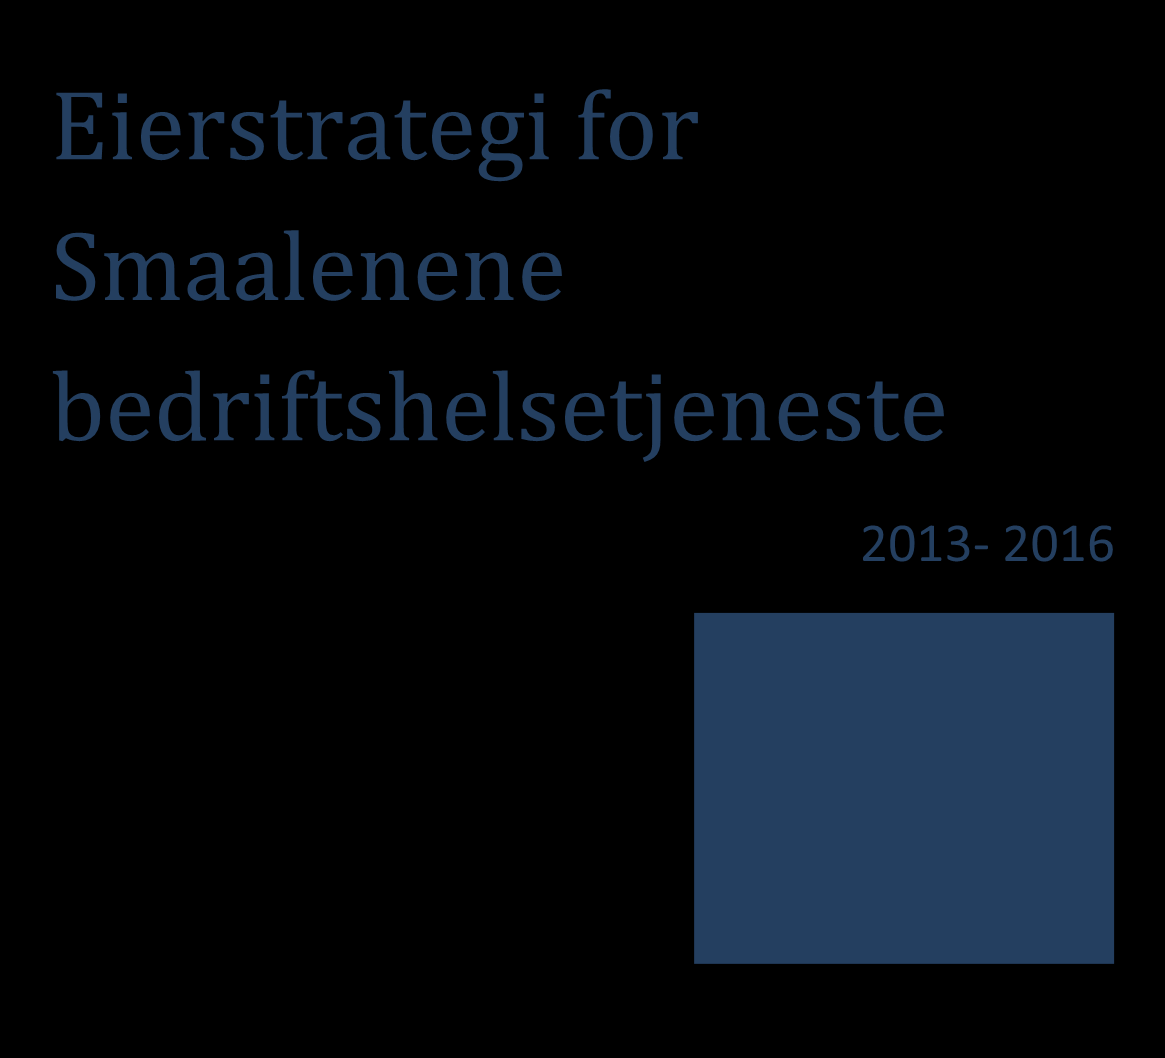 Eierstrategi for Smaalenene